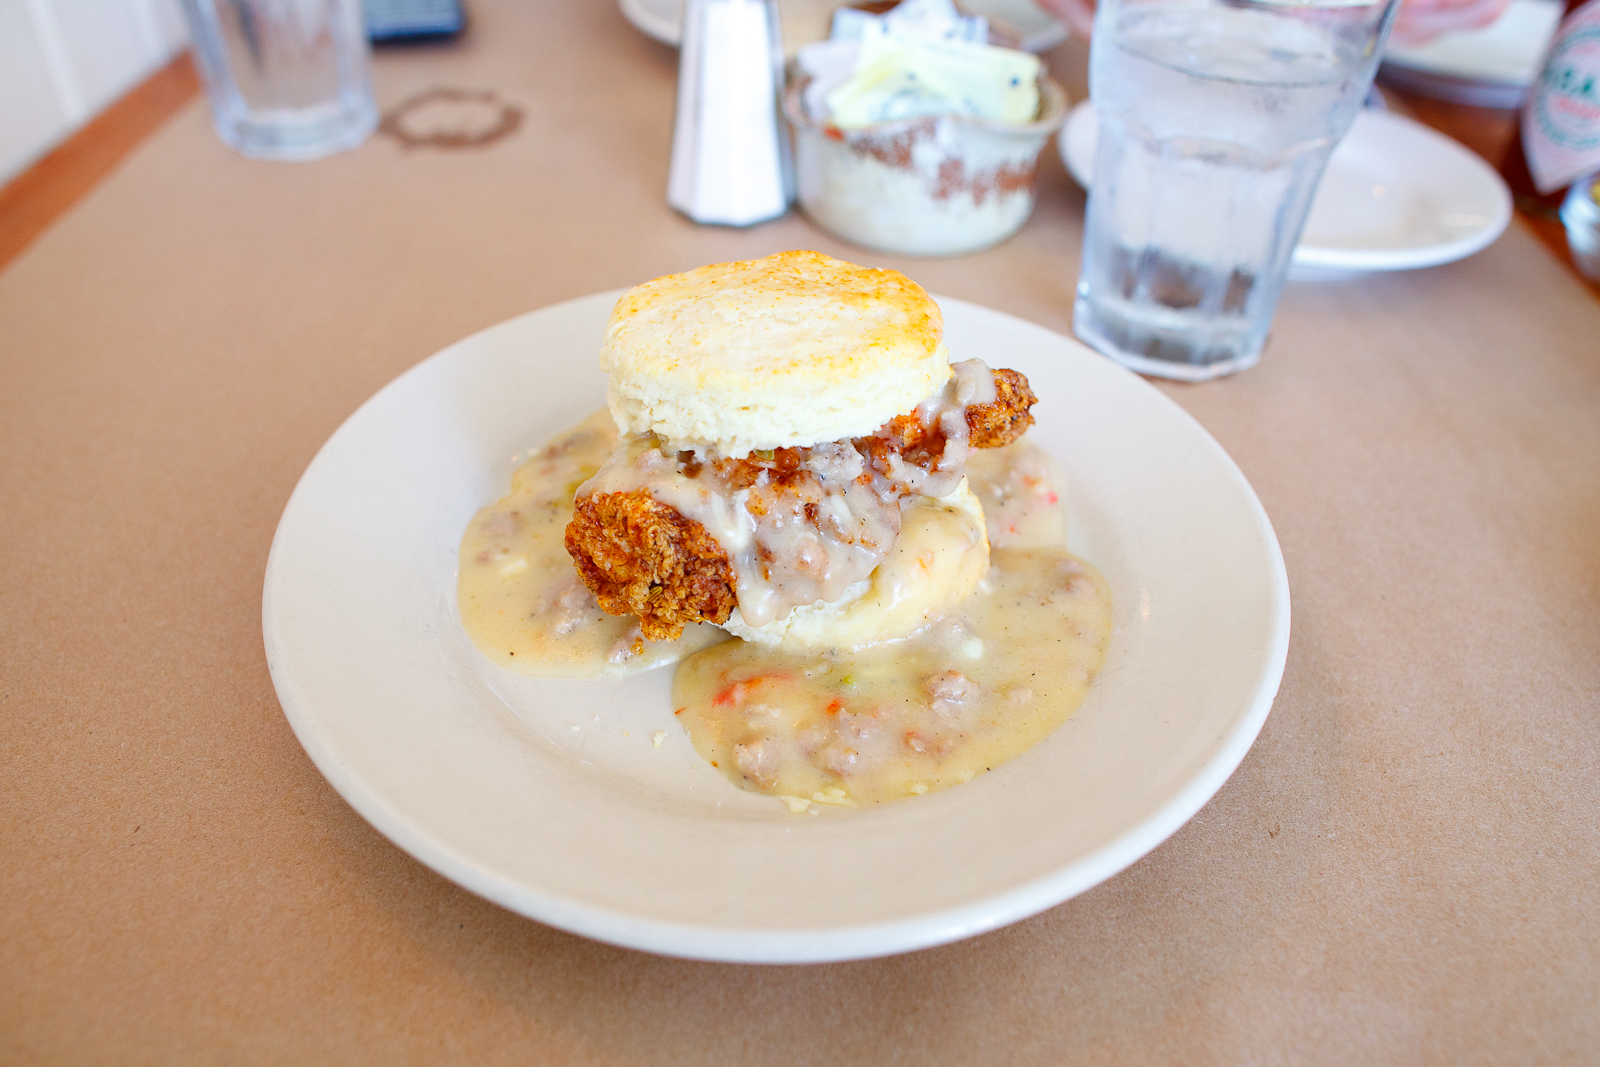 Big nasty biscuit with fried chicken breast, cheddar cheese, and sausage gravy ($6.50)